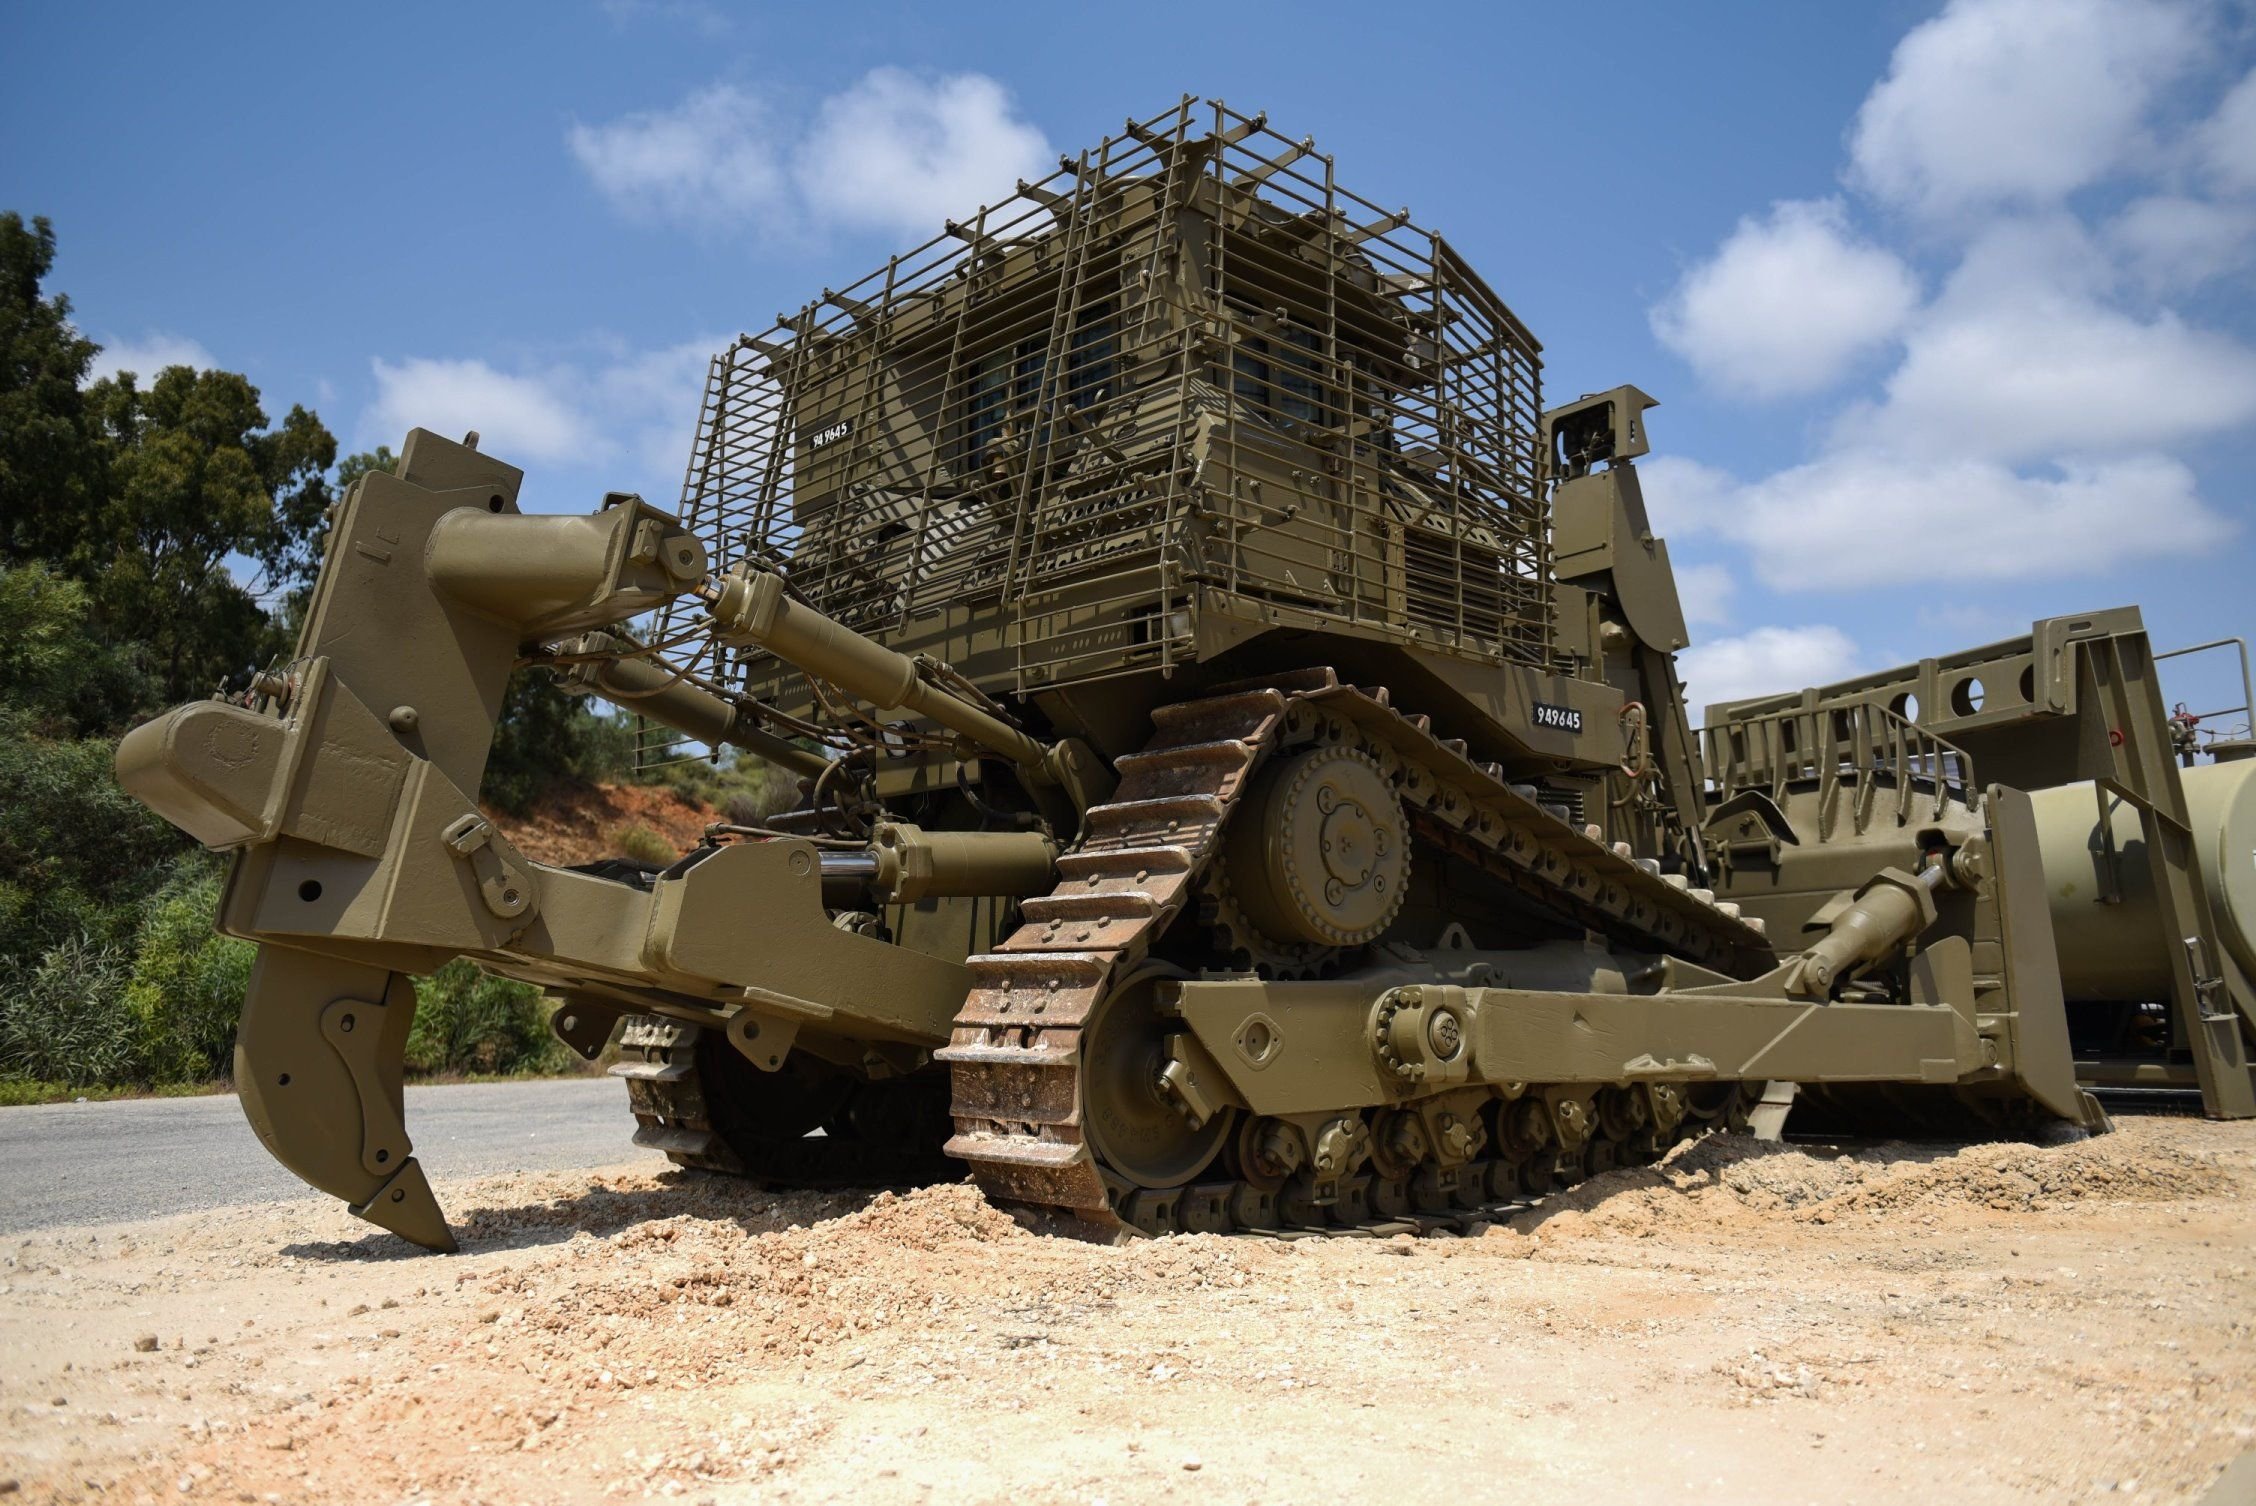 Armored D9 bulldozer the IDF engineering forces | Our IDF